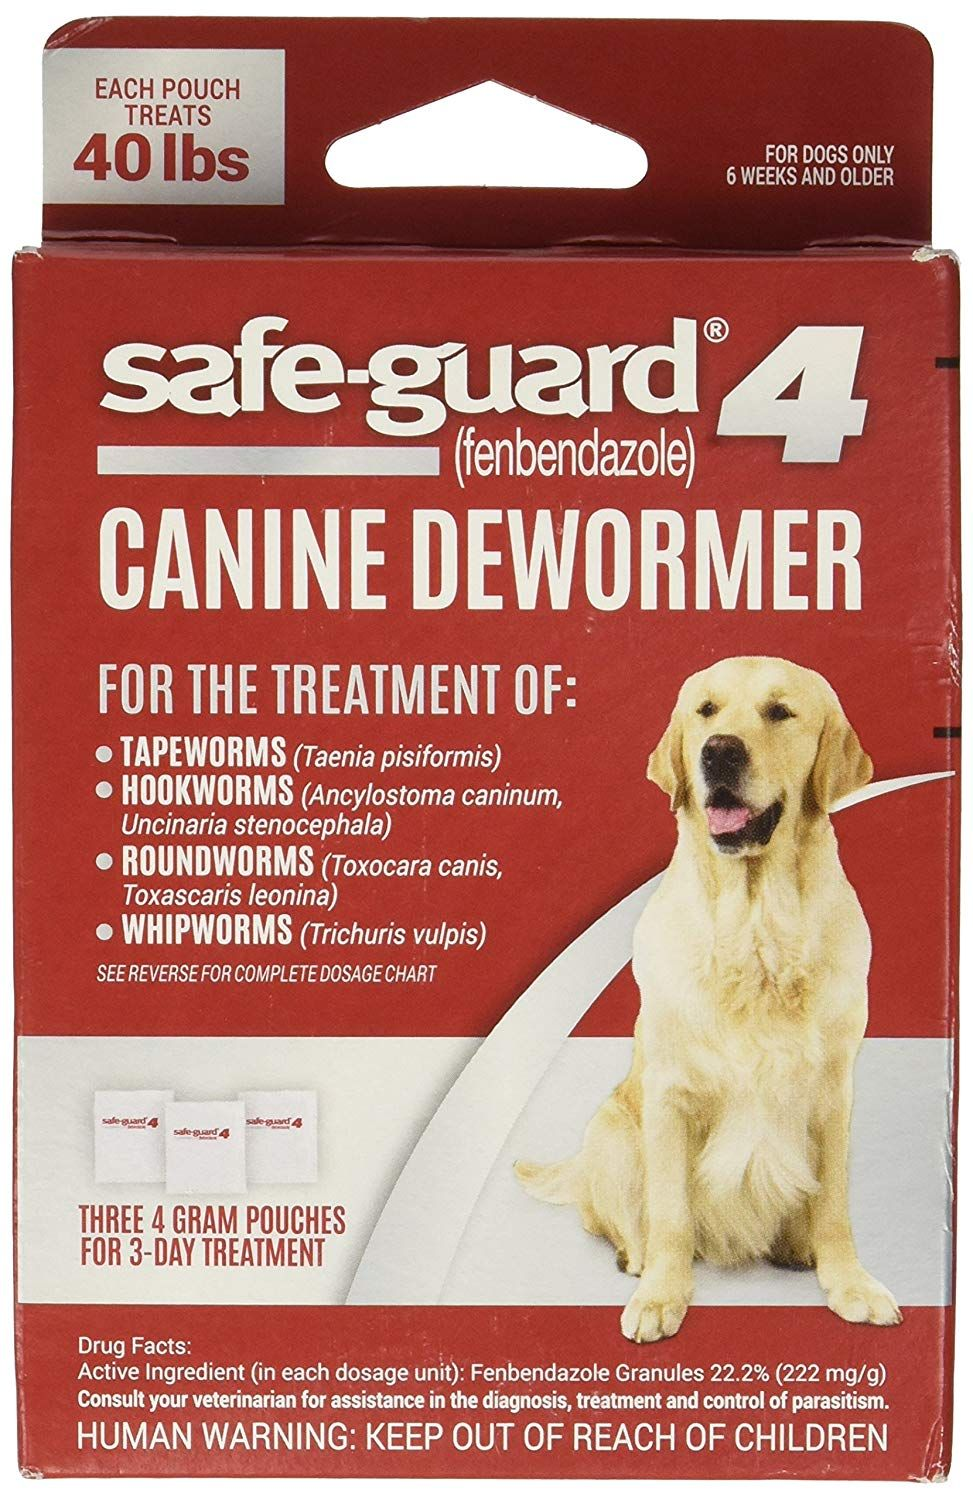 Upg Companion Animal Eio Wormer Safeguard 4 Lg Dog Very Nice Of Your Presence To Have Dropped By To See Our Image Th Deworming Dogs Pregnant Dog Canine